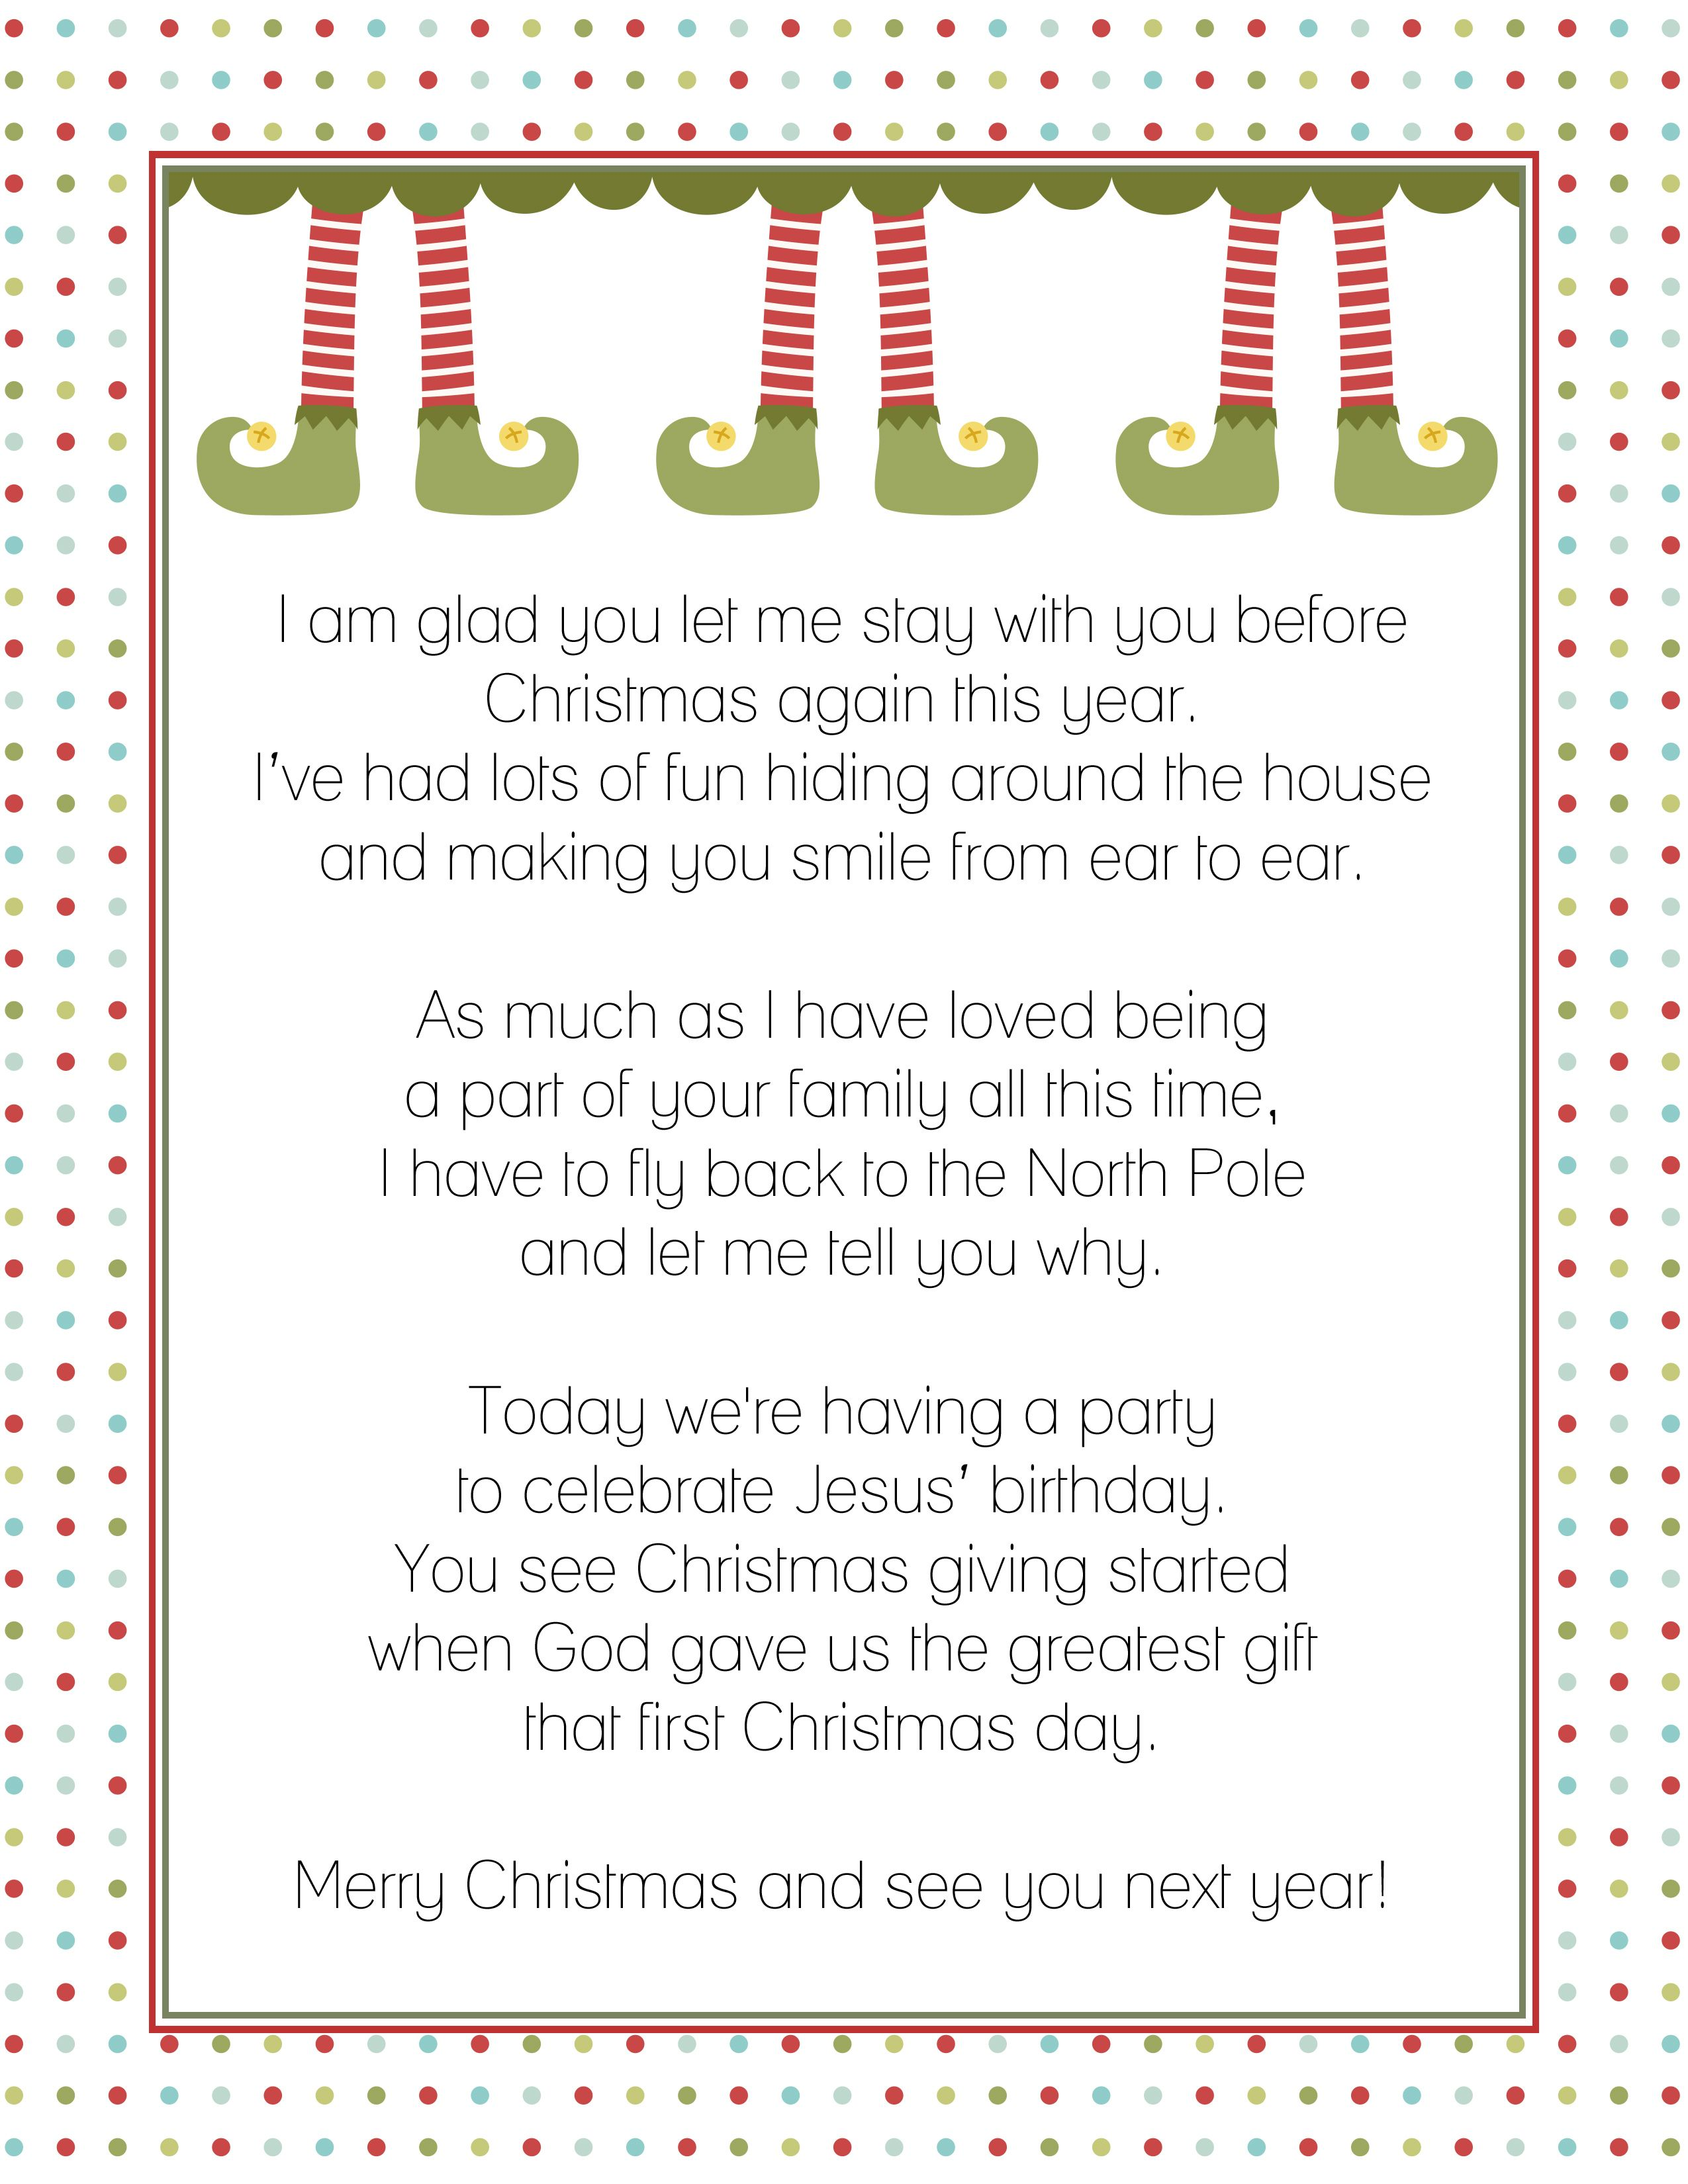 Goodbye Letter from the Elf on a Shelf Christmas Pinterest